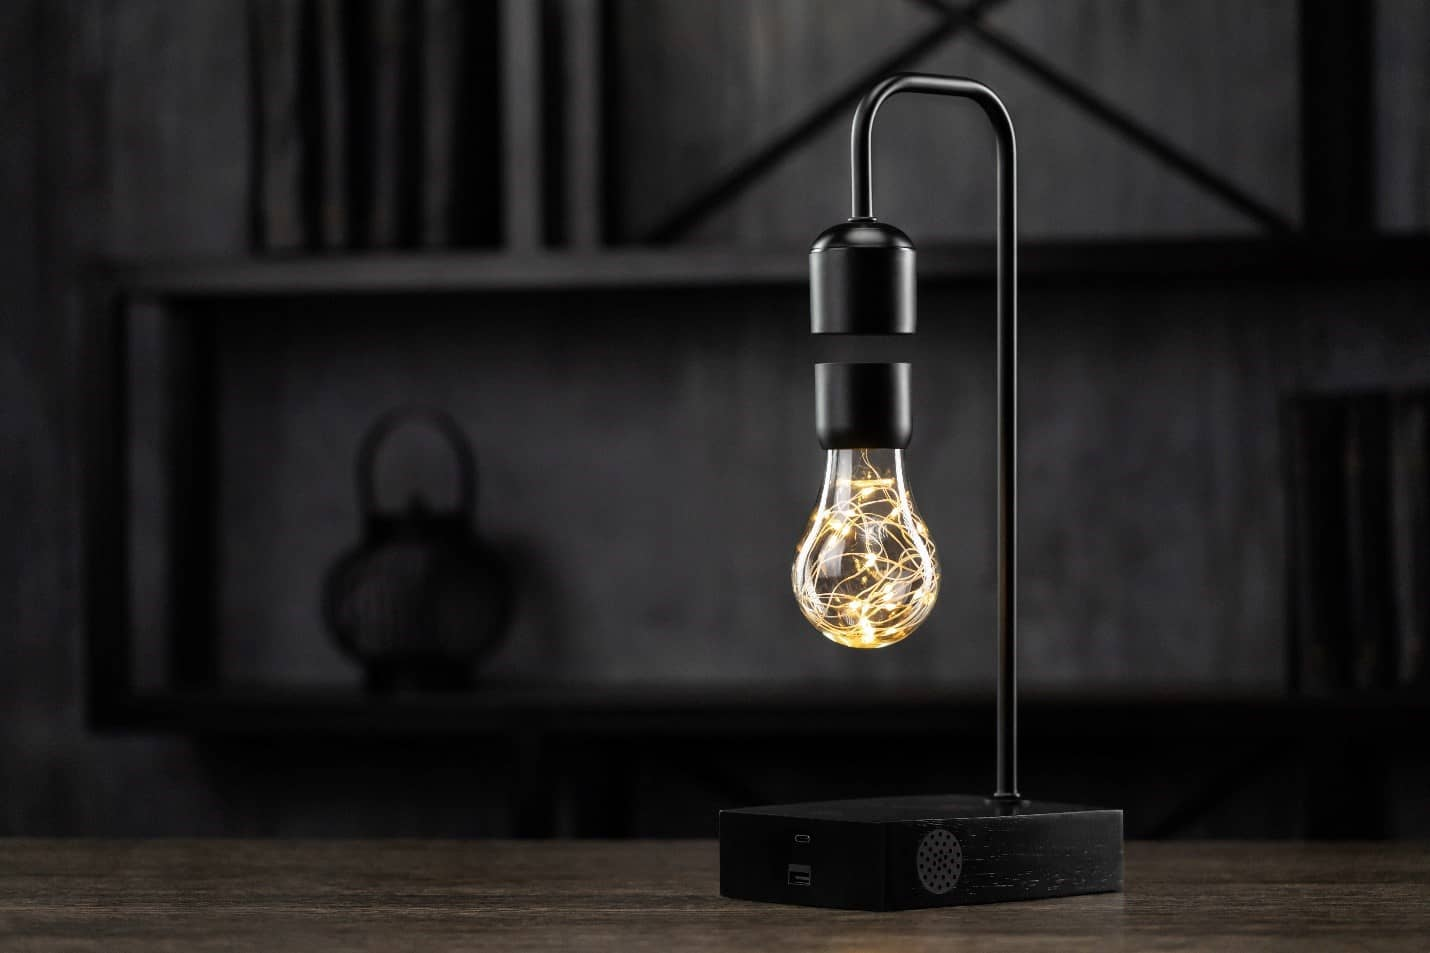 Gifts for Gadget Lovers: Gravita, the Levitating Lamp